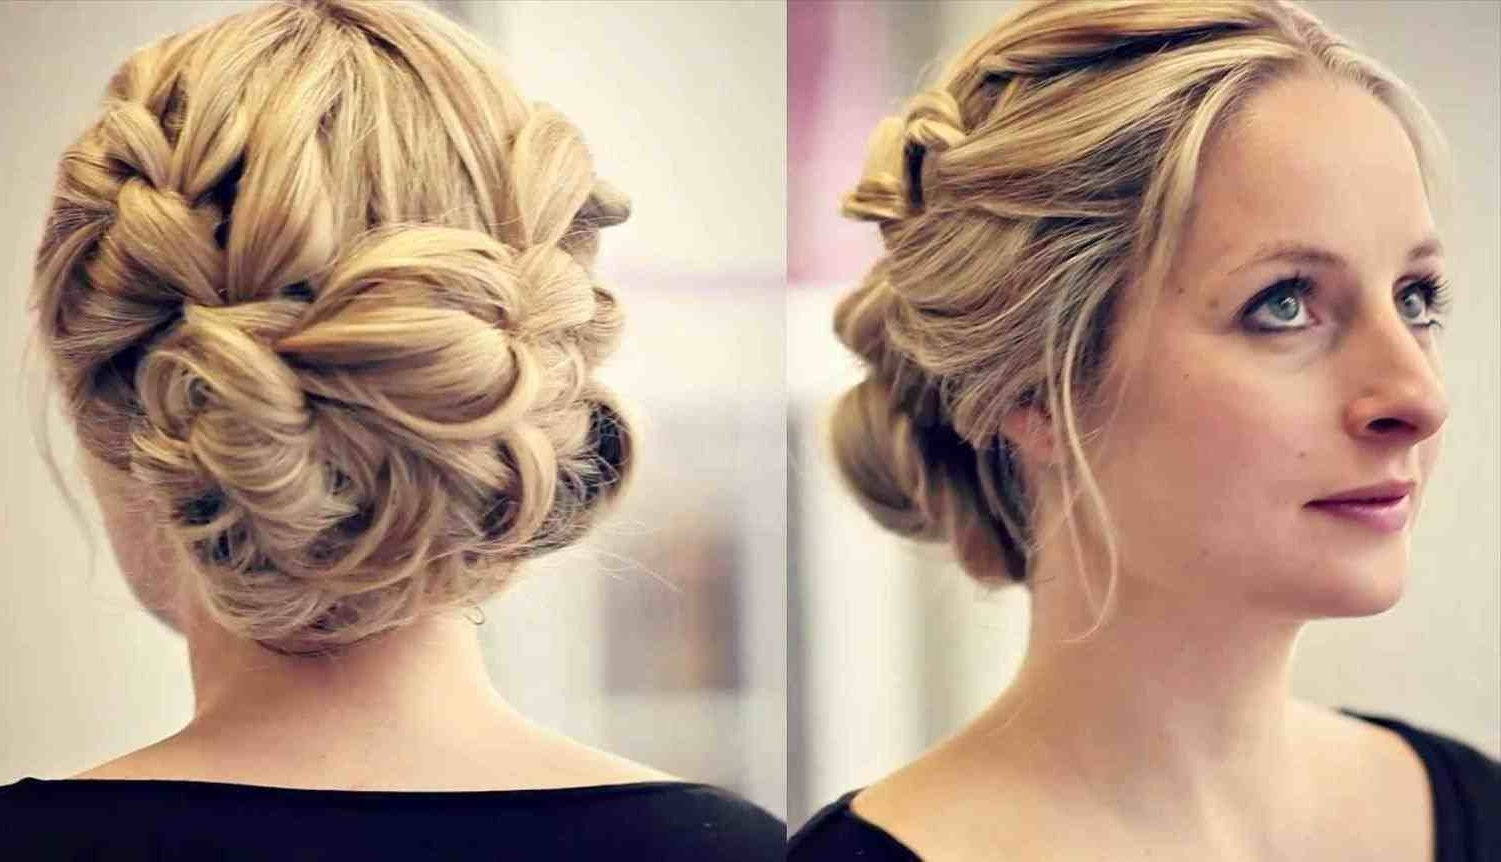 For Bridesmaids About Easy Wedding Hairstyles For Long Hair Cute Within Most Popular Easy Bridesmaid Hairstyles For Short Hair (View 7 of 15)